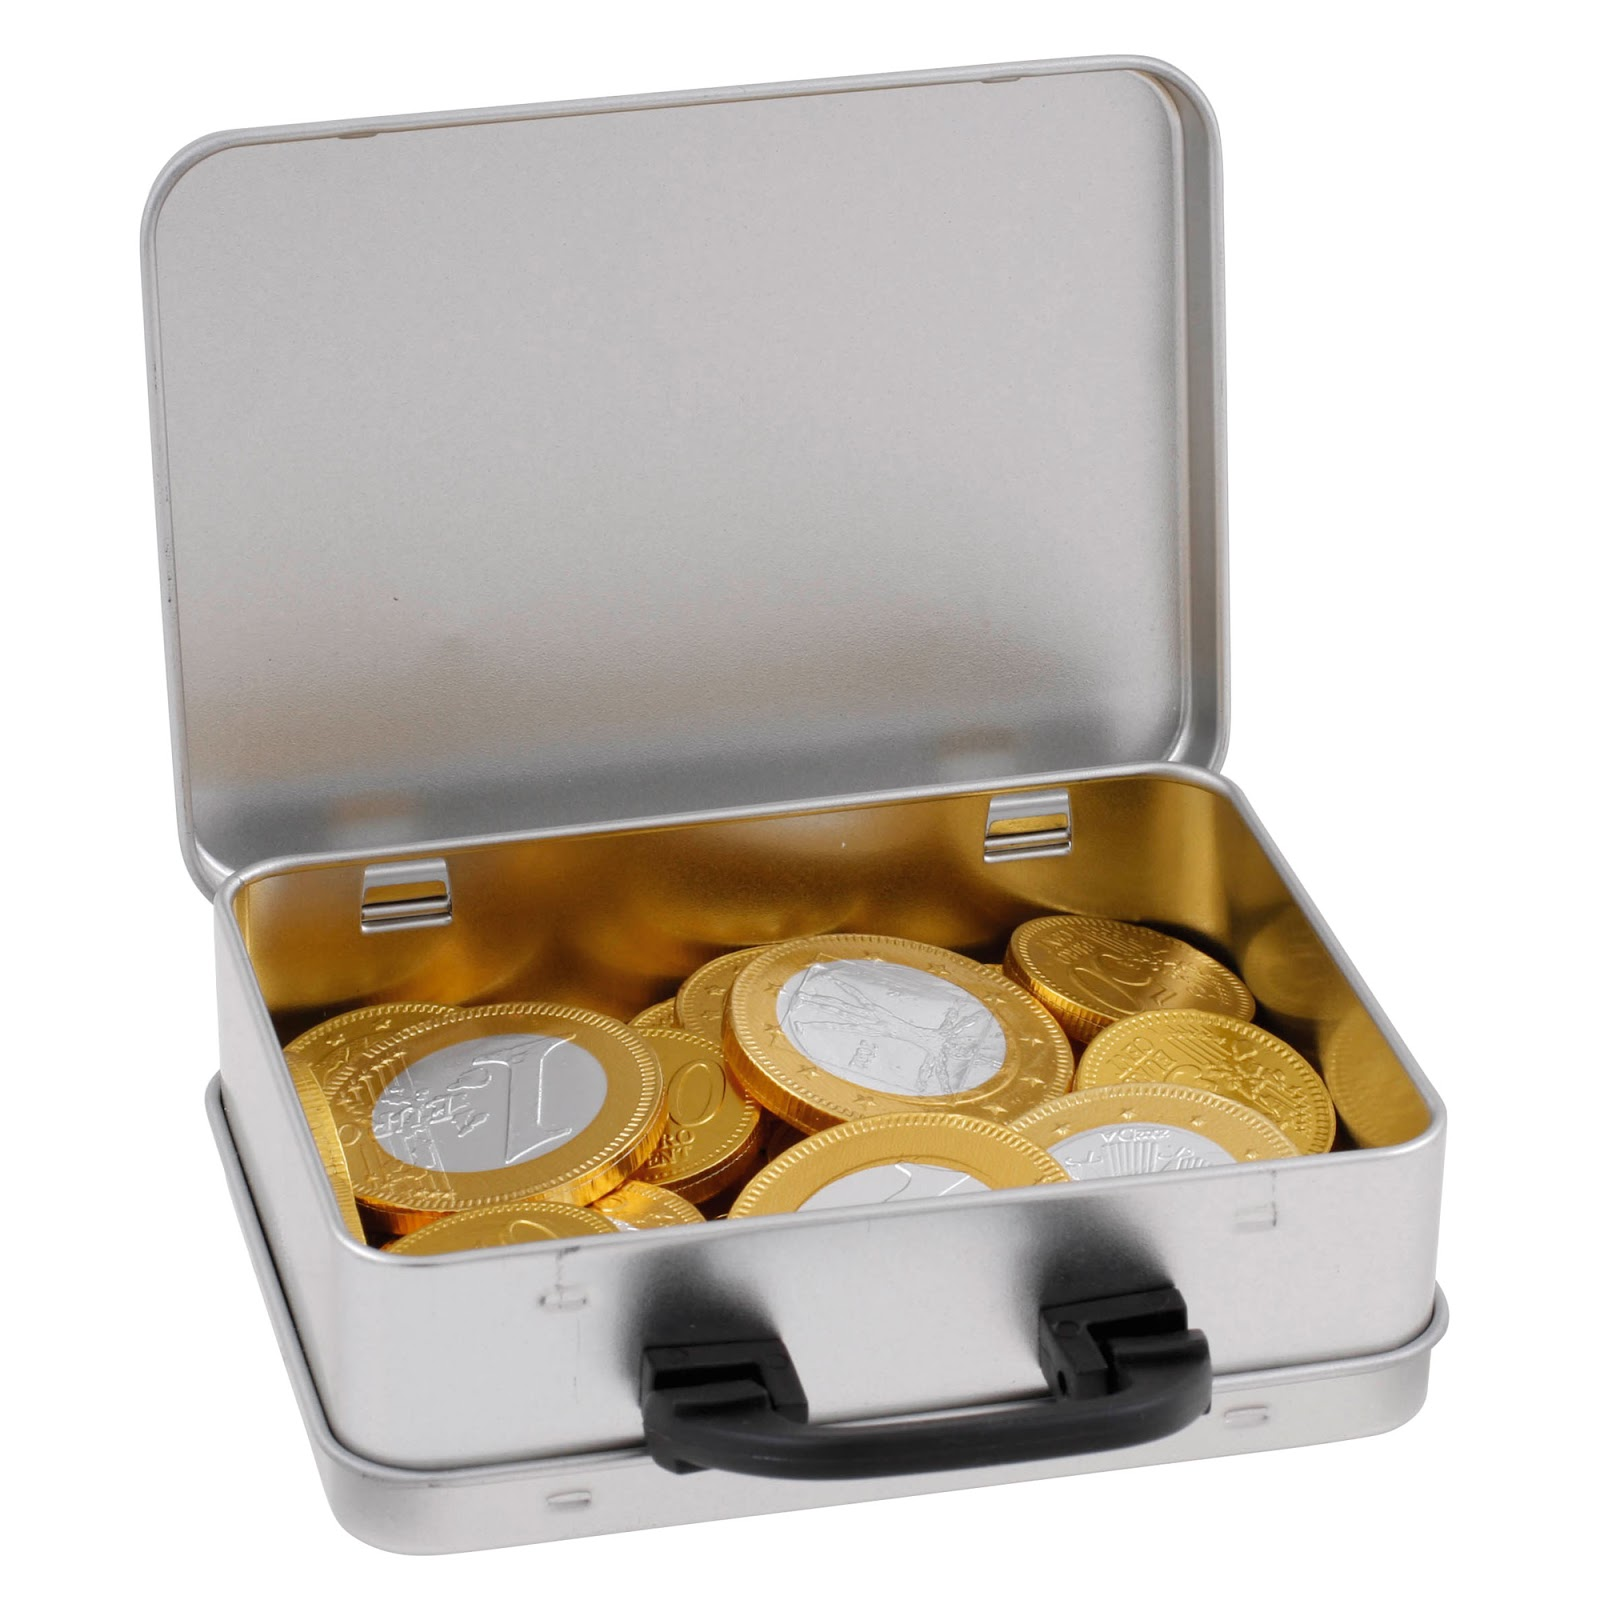 Suitcase Sweet Tins for Mints and Chocolates